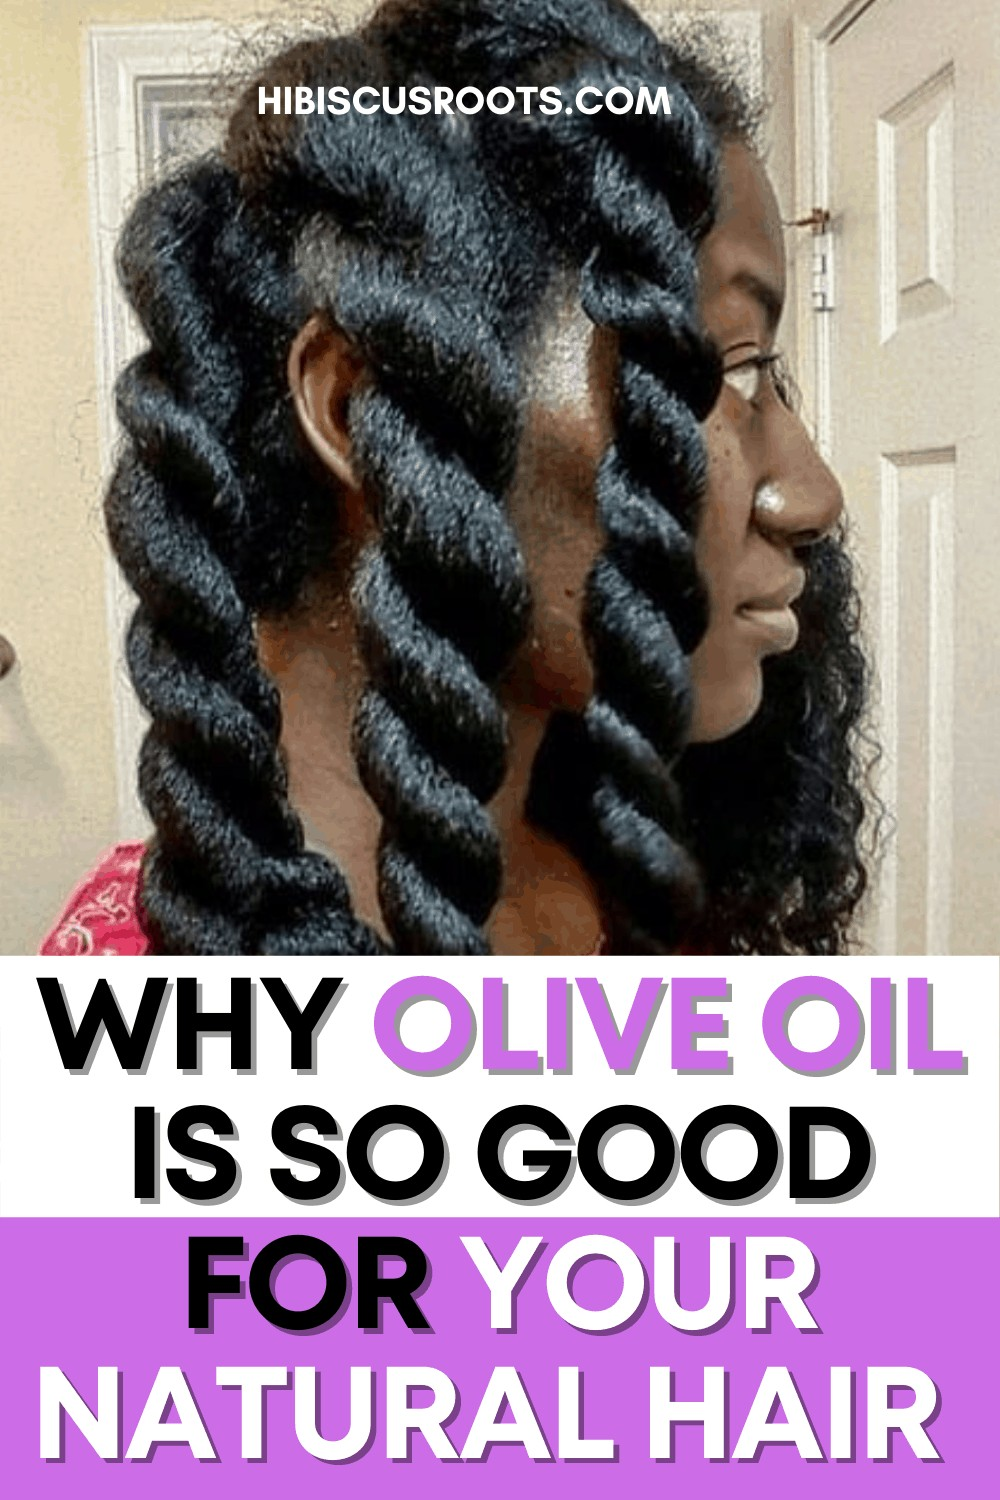 Why Olive Oil is so Good for Your Hair